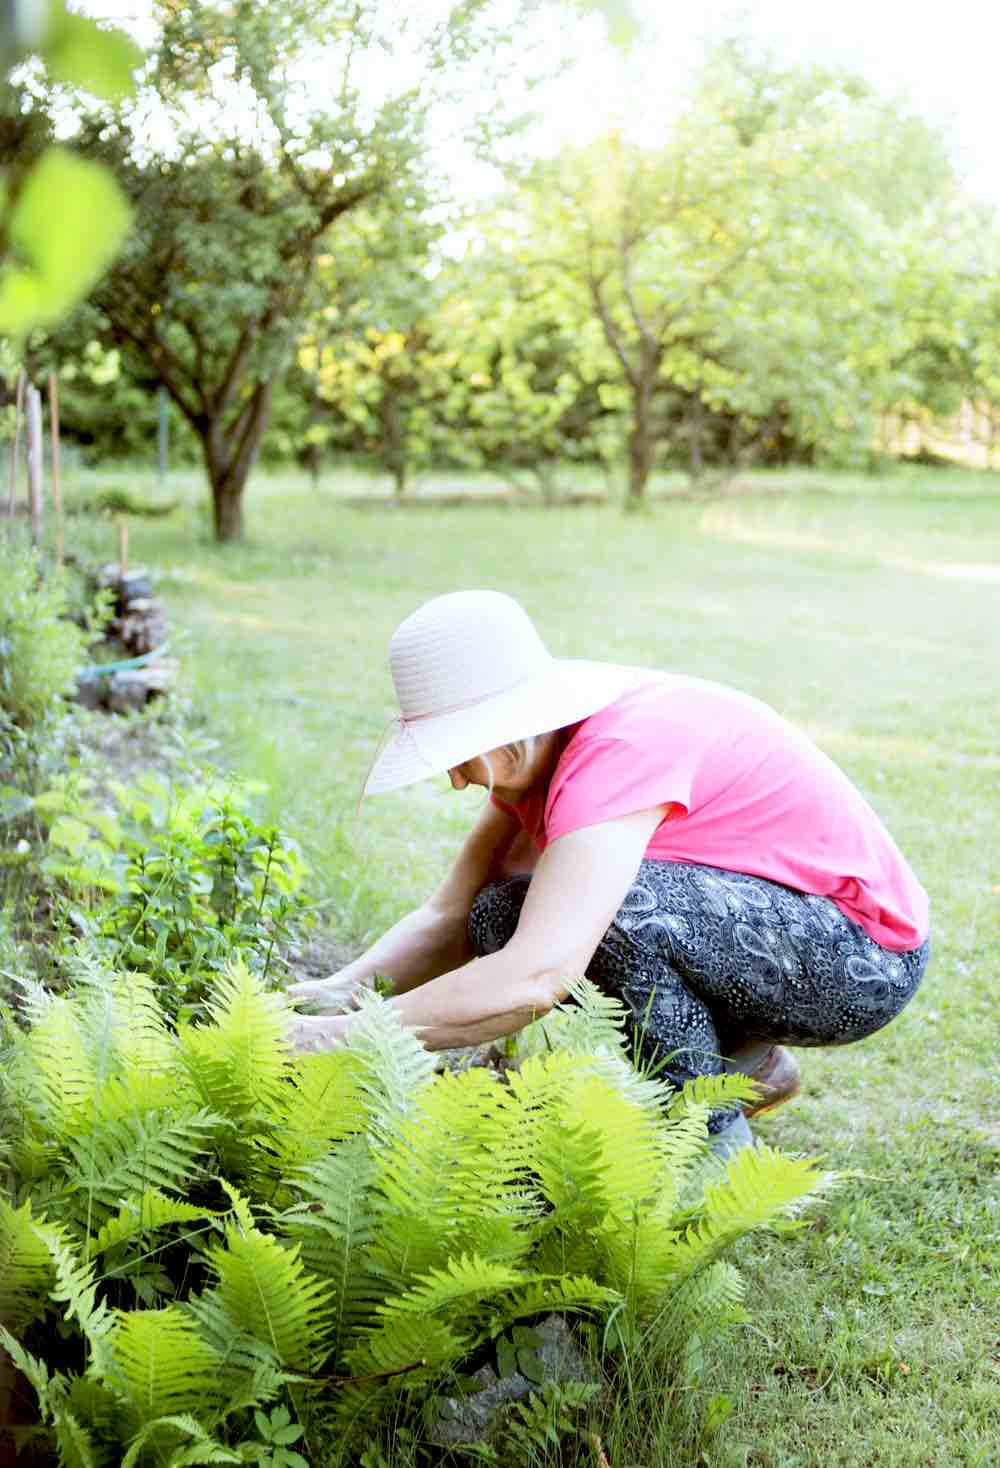 Woman Gardening Outdoor | Practical Gardening Skills Every Gardener Should Have Handy